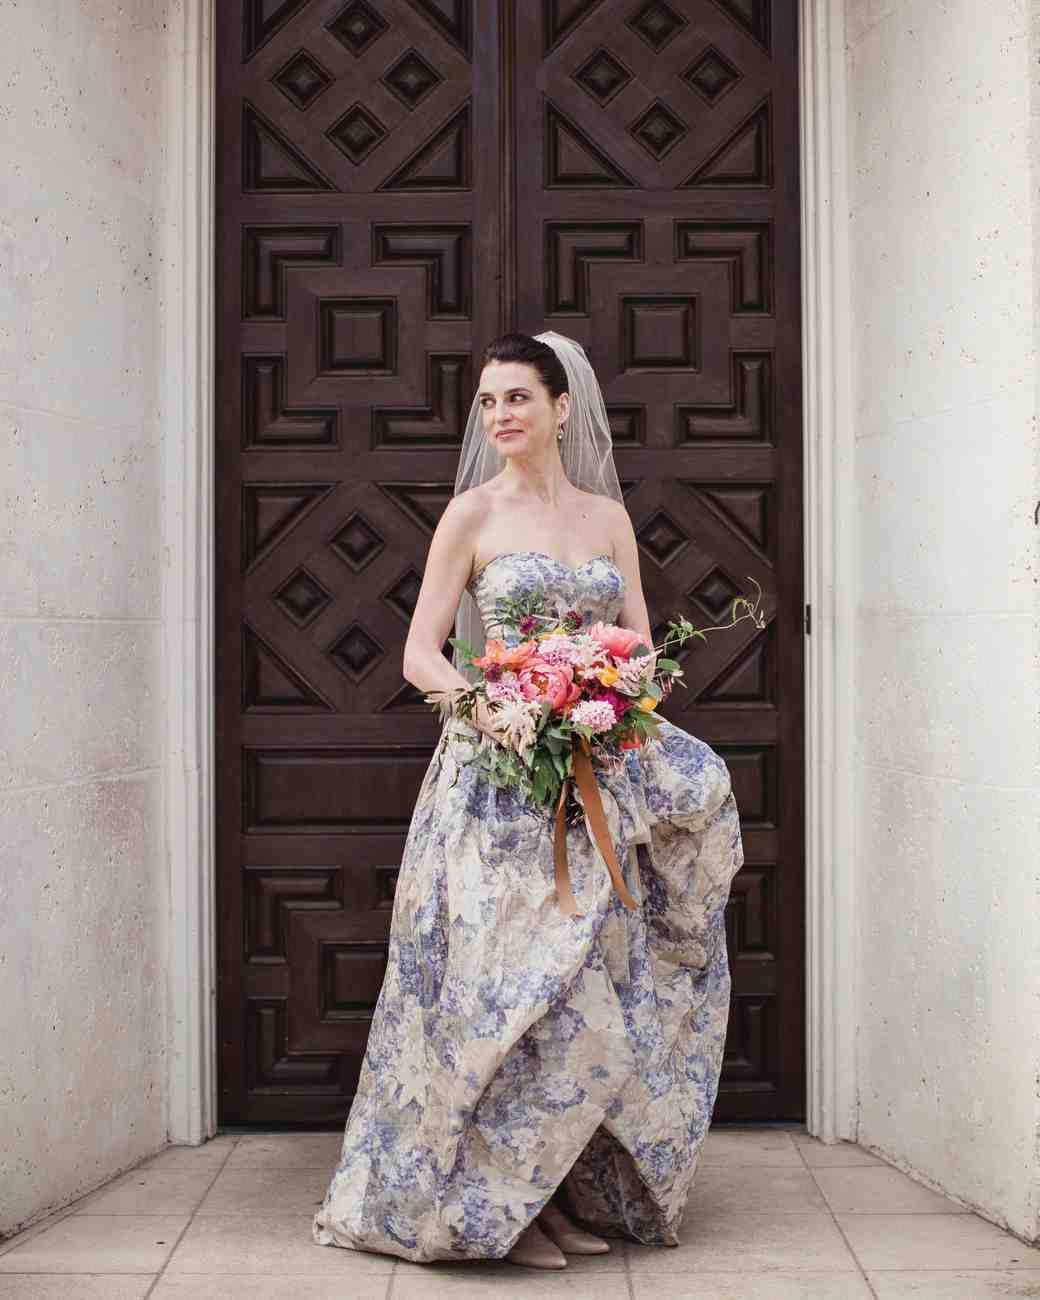 Blue and White Strapless Floral Wedding Gown